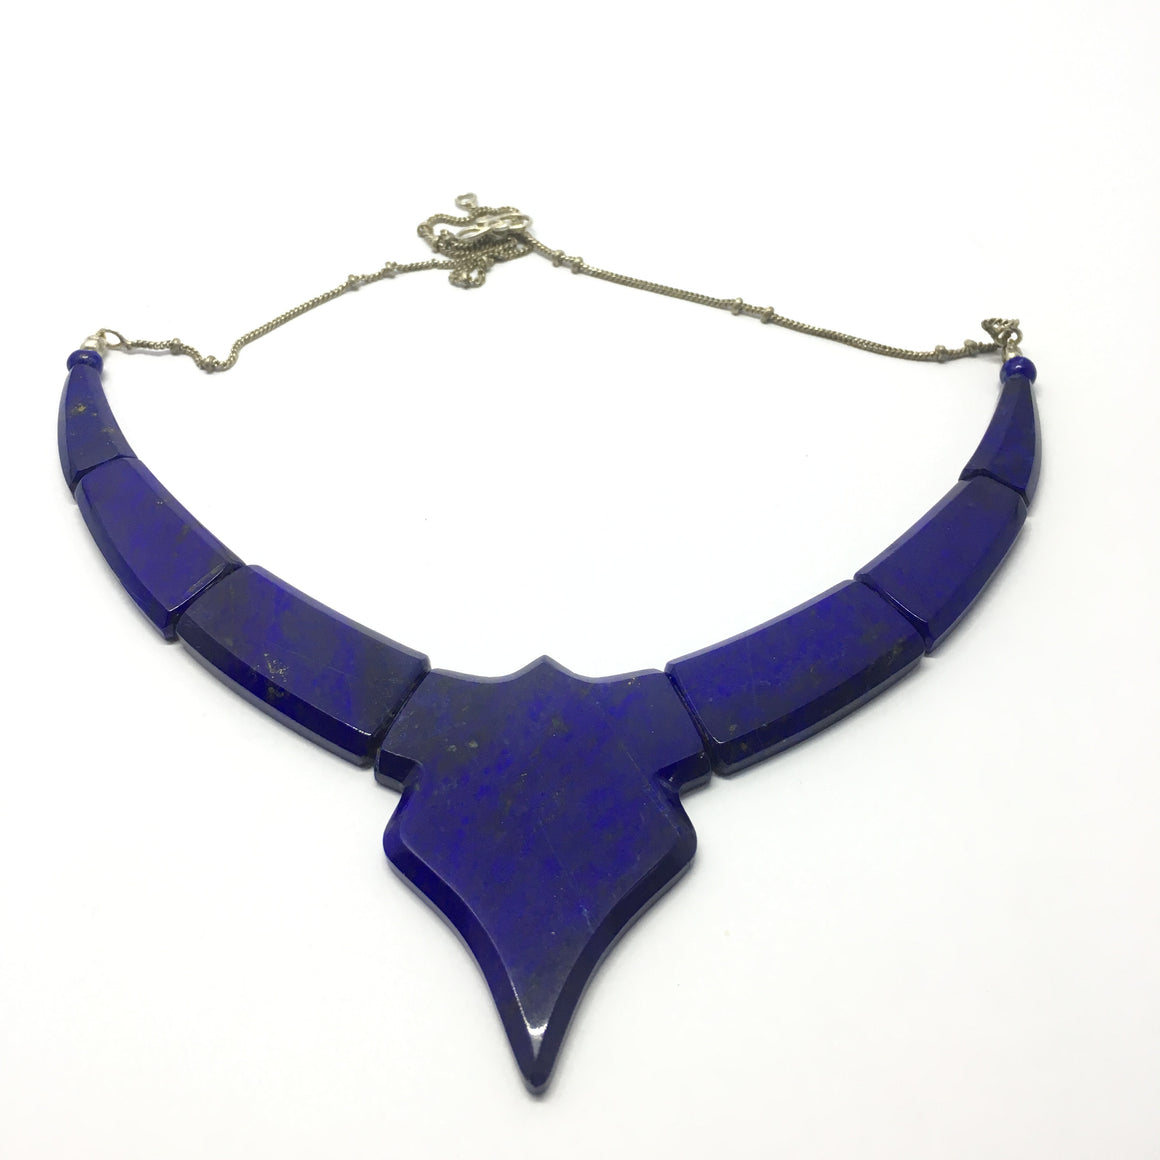 150.5 Carat, Designed Lapis Lazuli Necklace with Metal Chain